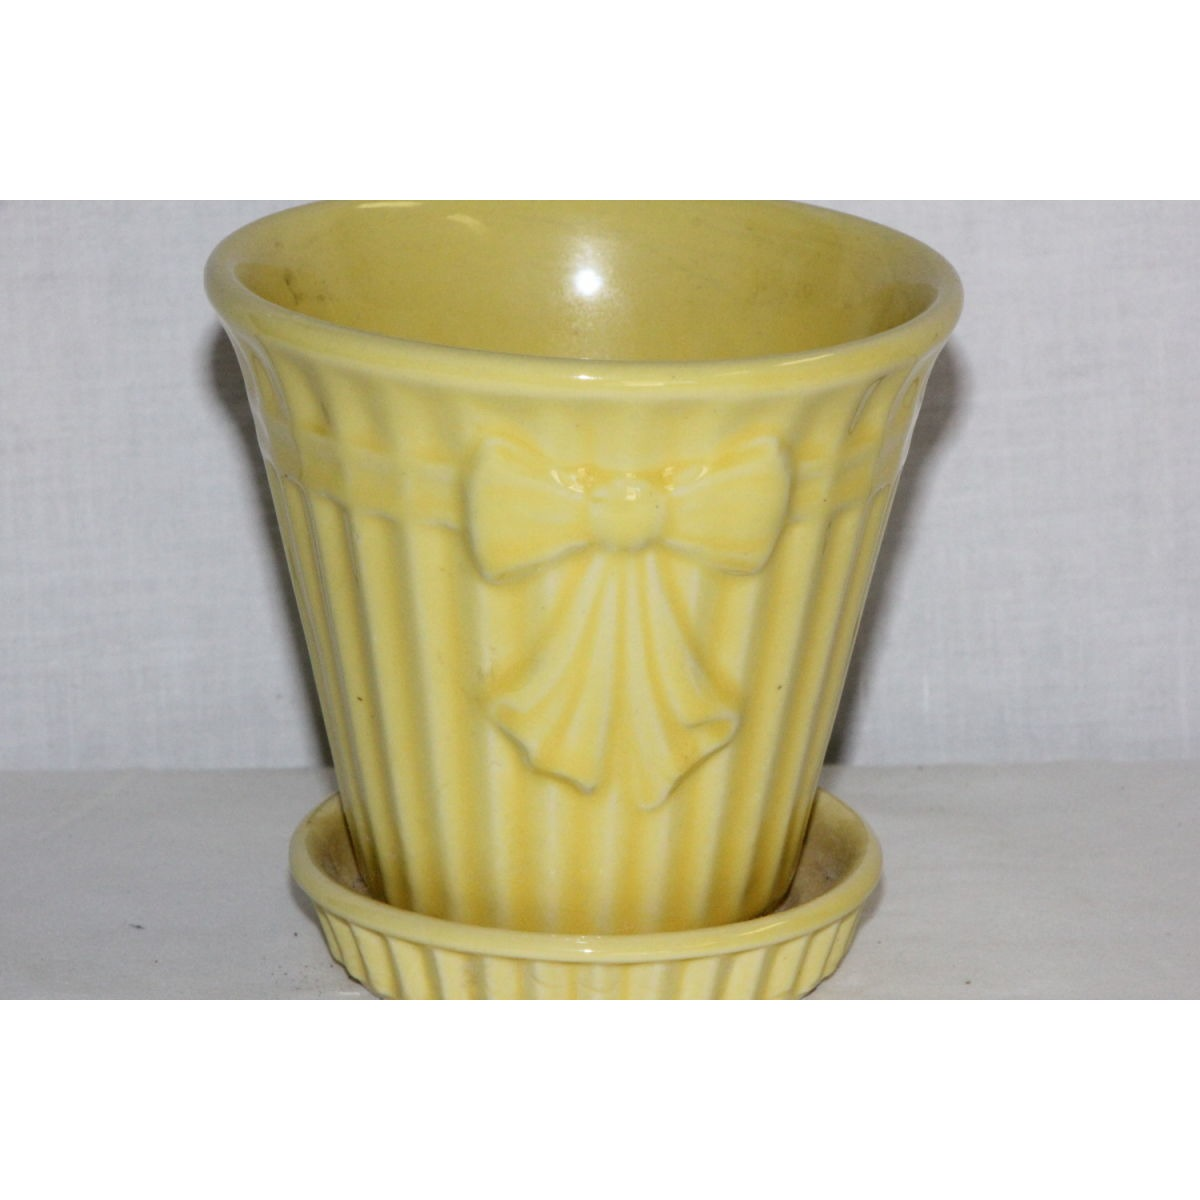 Summery Yellow Bow and Narrow Fluted Flower Pot Planter